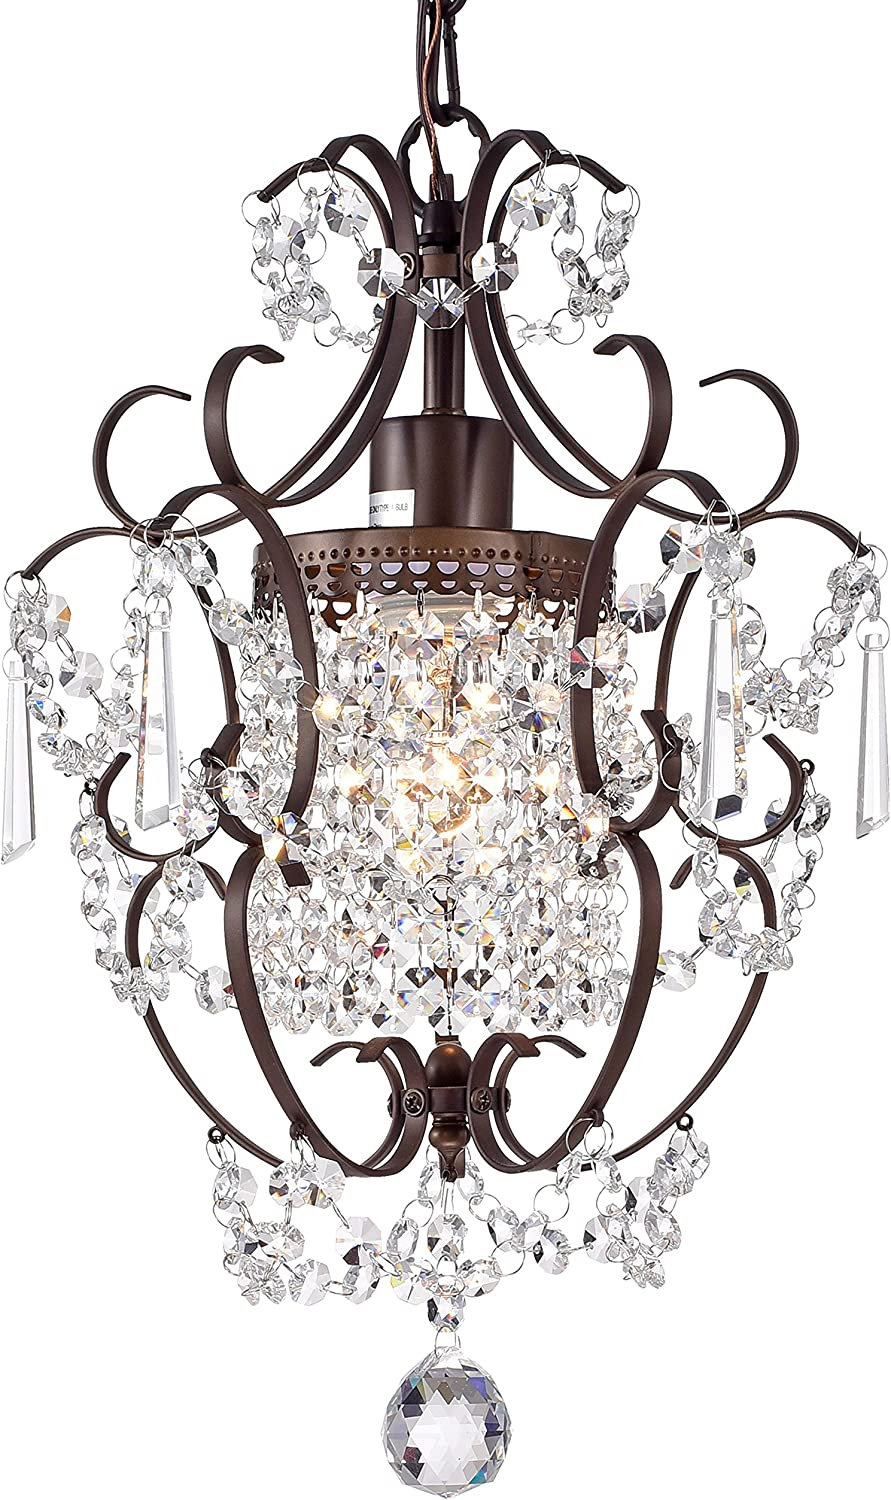 Top 10 Best Chandelier For Baby Girl Nursery (2020 Reviews & Buying Guide) 1